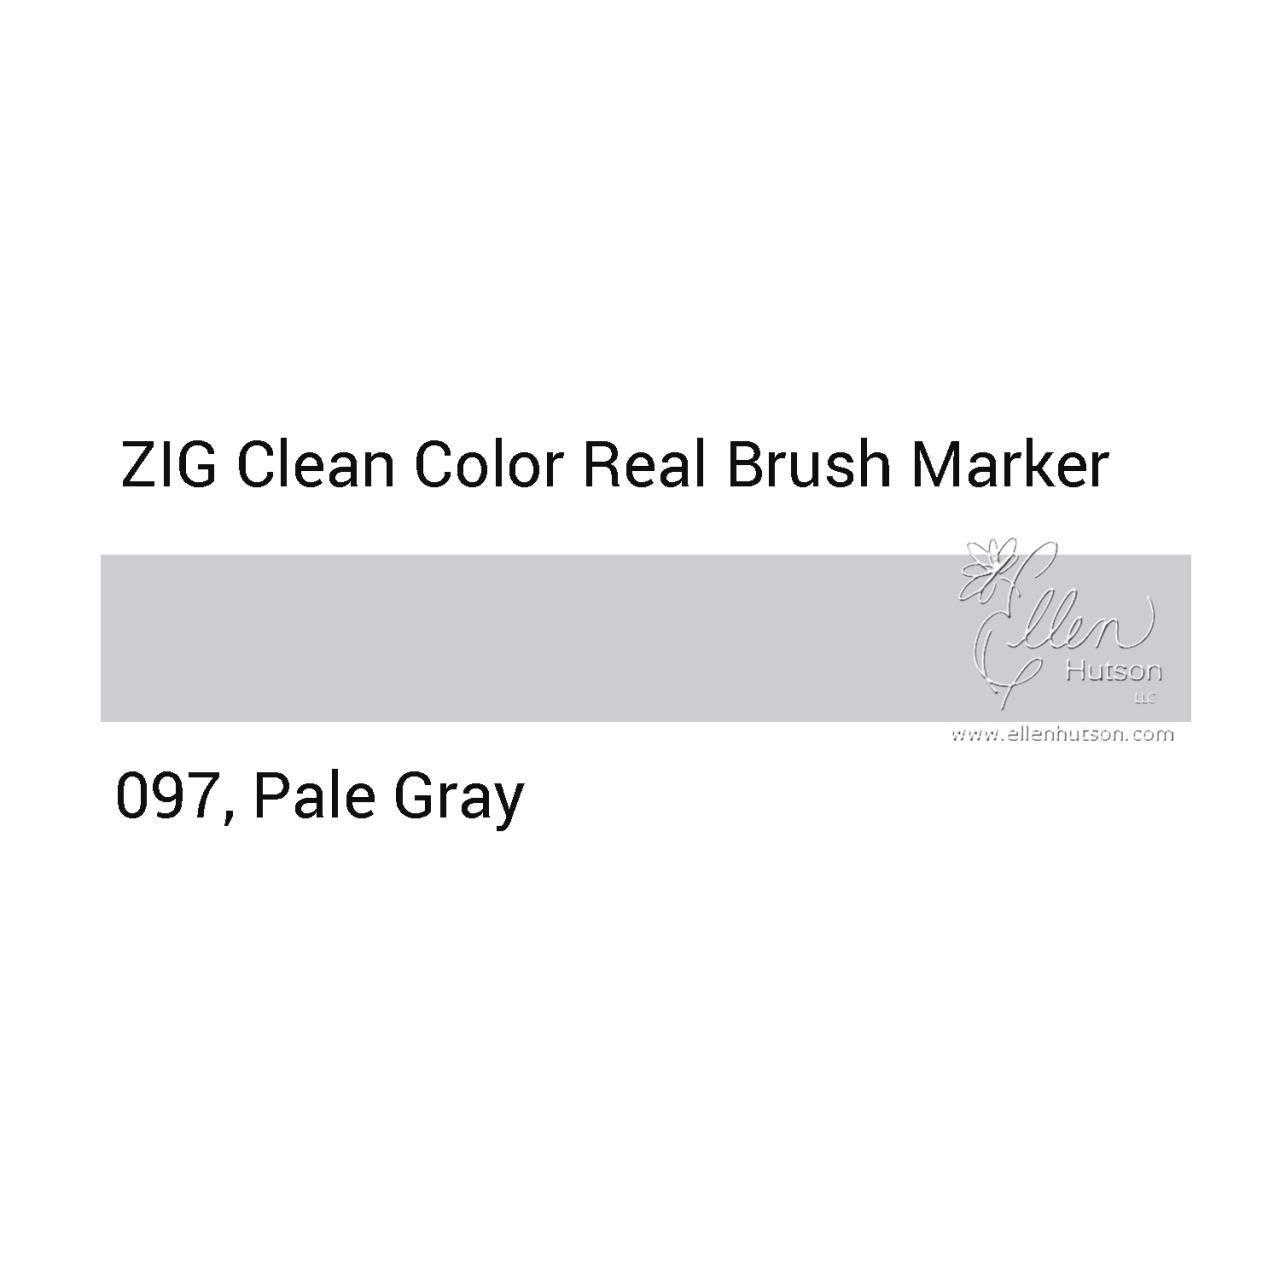 097 - Pale Gray, ZIG Clean Color Real Brush Marker -